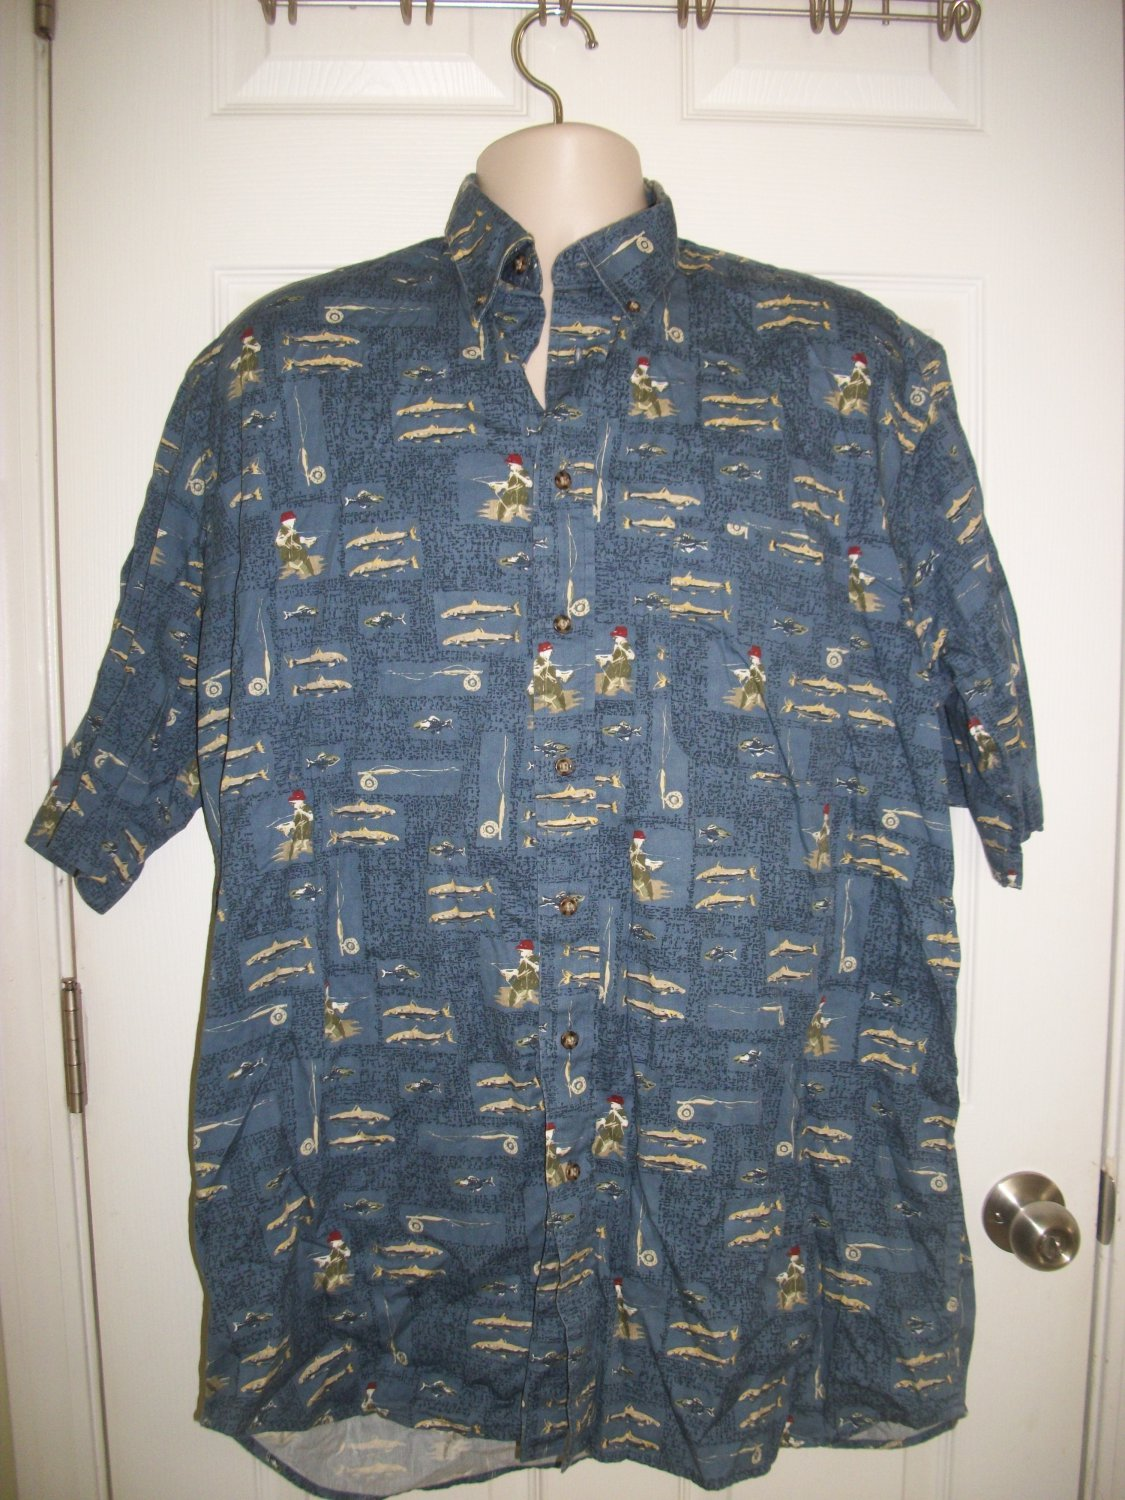 Foxfire Sportswear Men's Blue Fishing Print Short Sleeved Shirt Size XT